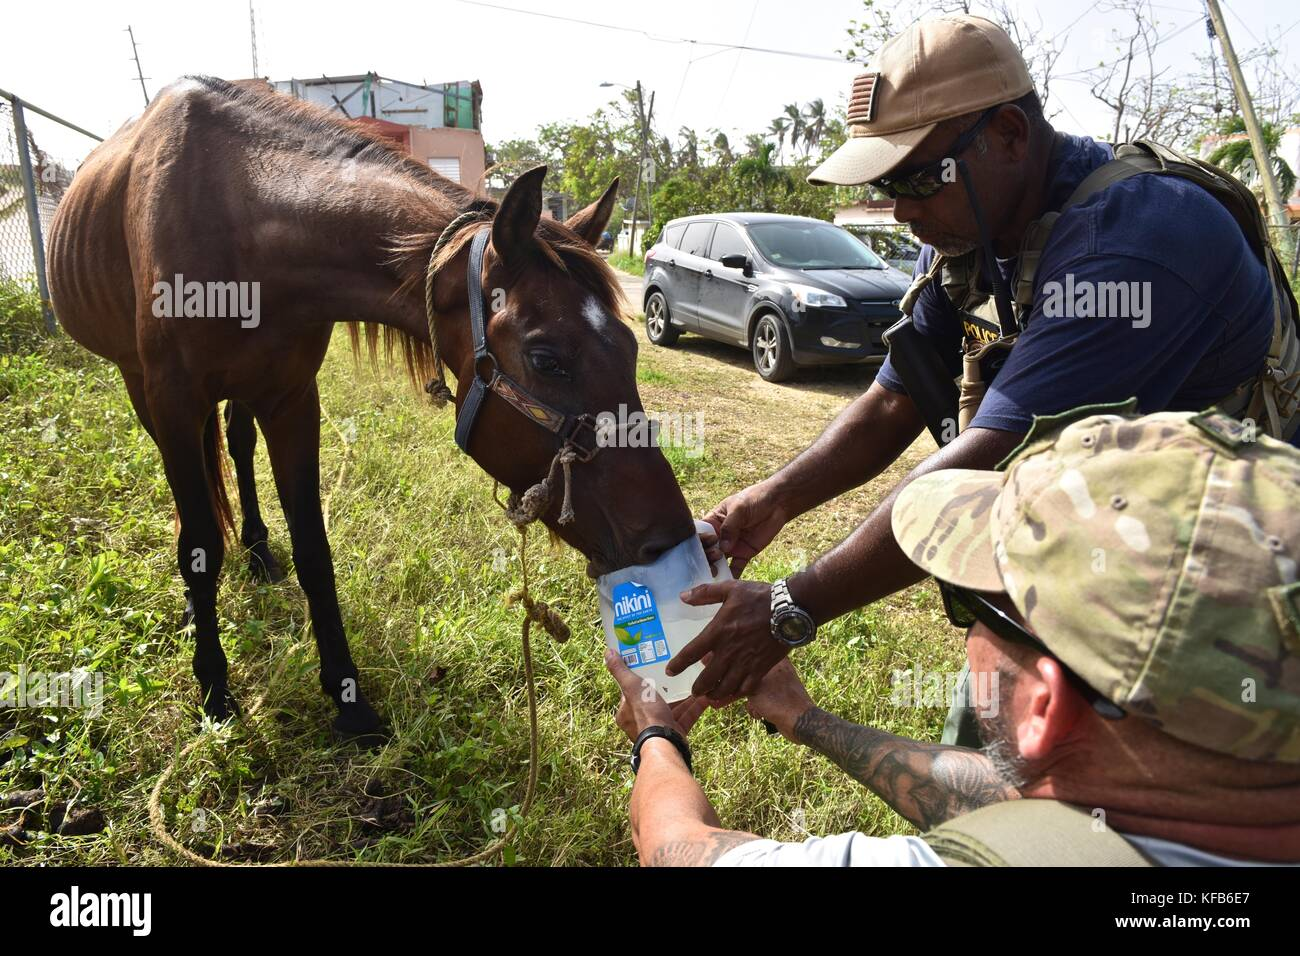 U.S. Coast Guard officers give water to an abandoned horse during relief efforts in the aftermath of Hurricane Maria - Stock Image